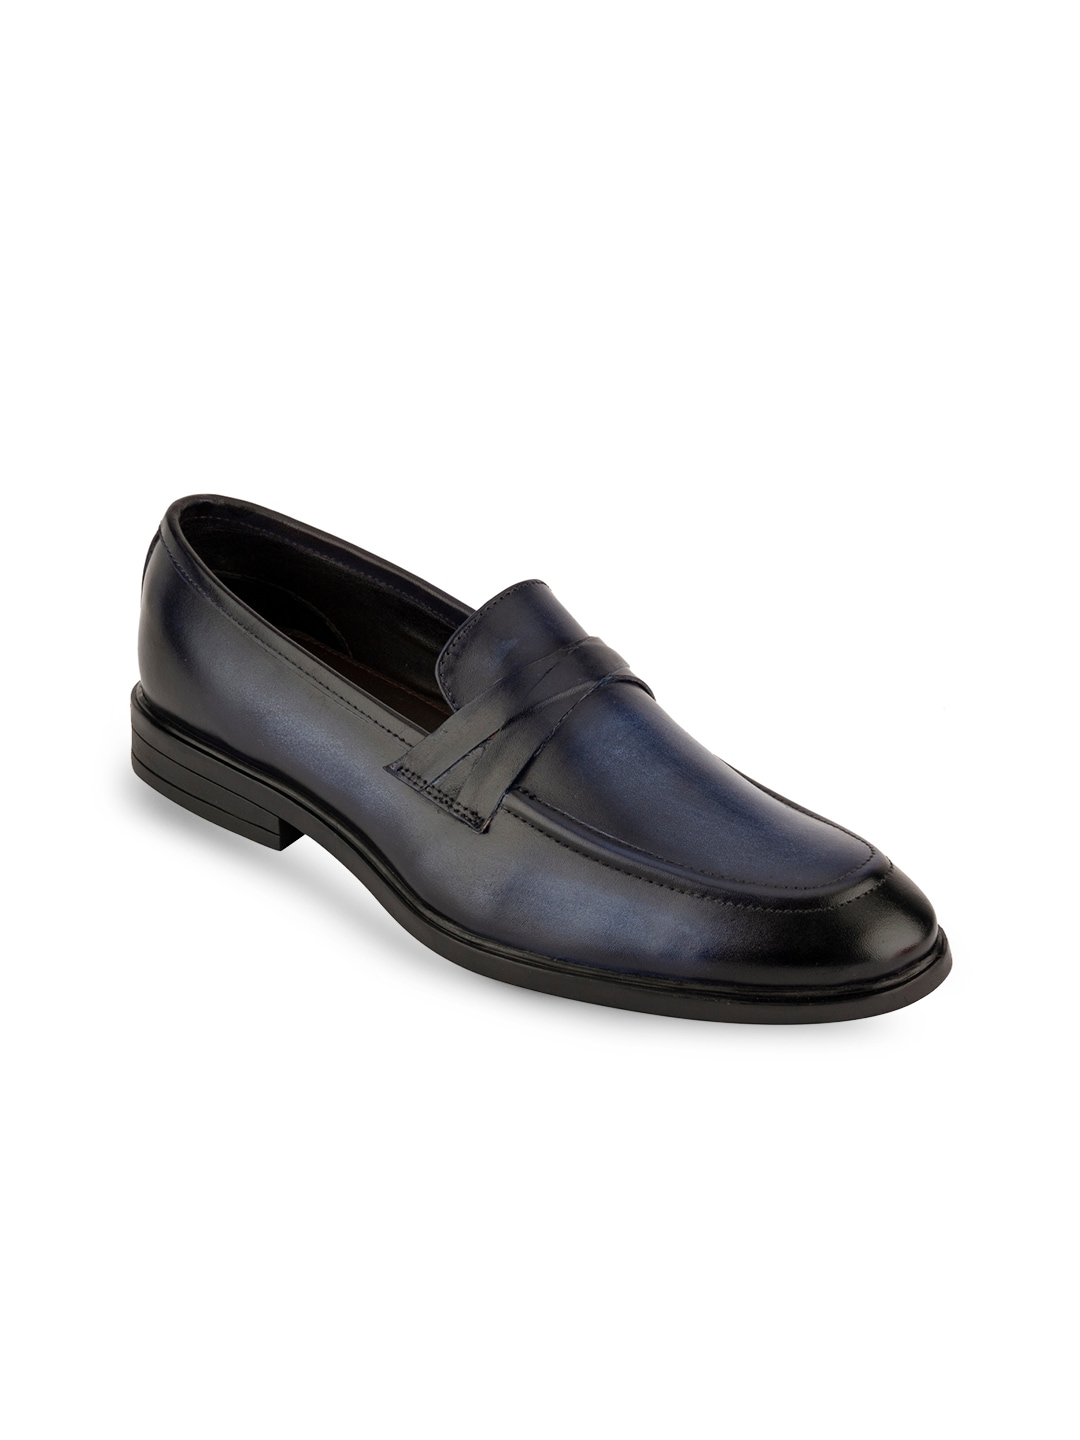 c4670be9650 Loafers Shoes For Men - Buy Loafers Shoes For Men online in India